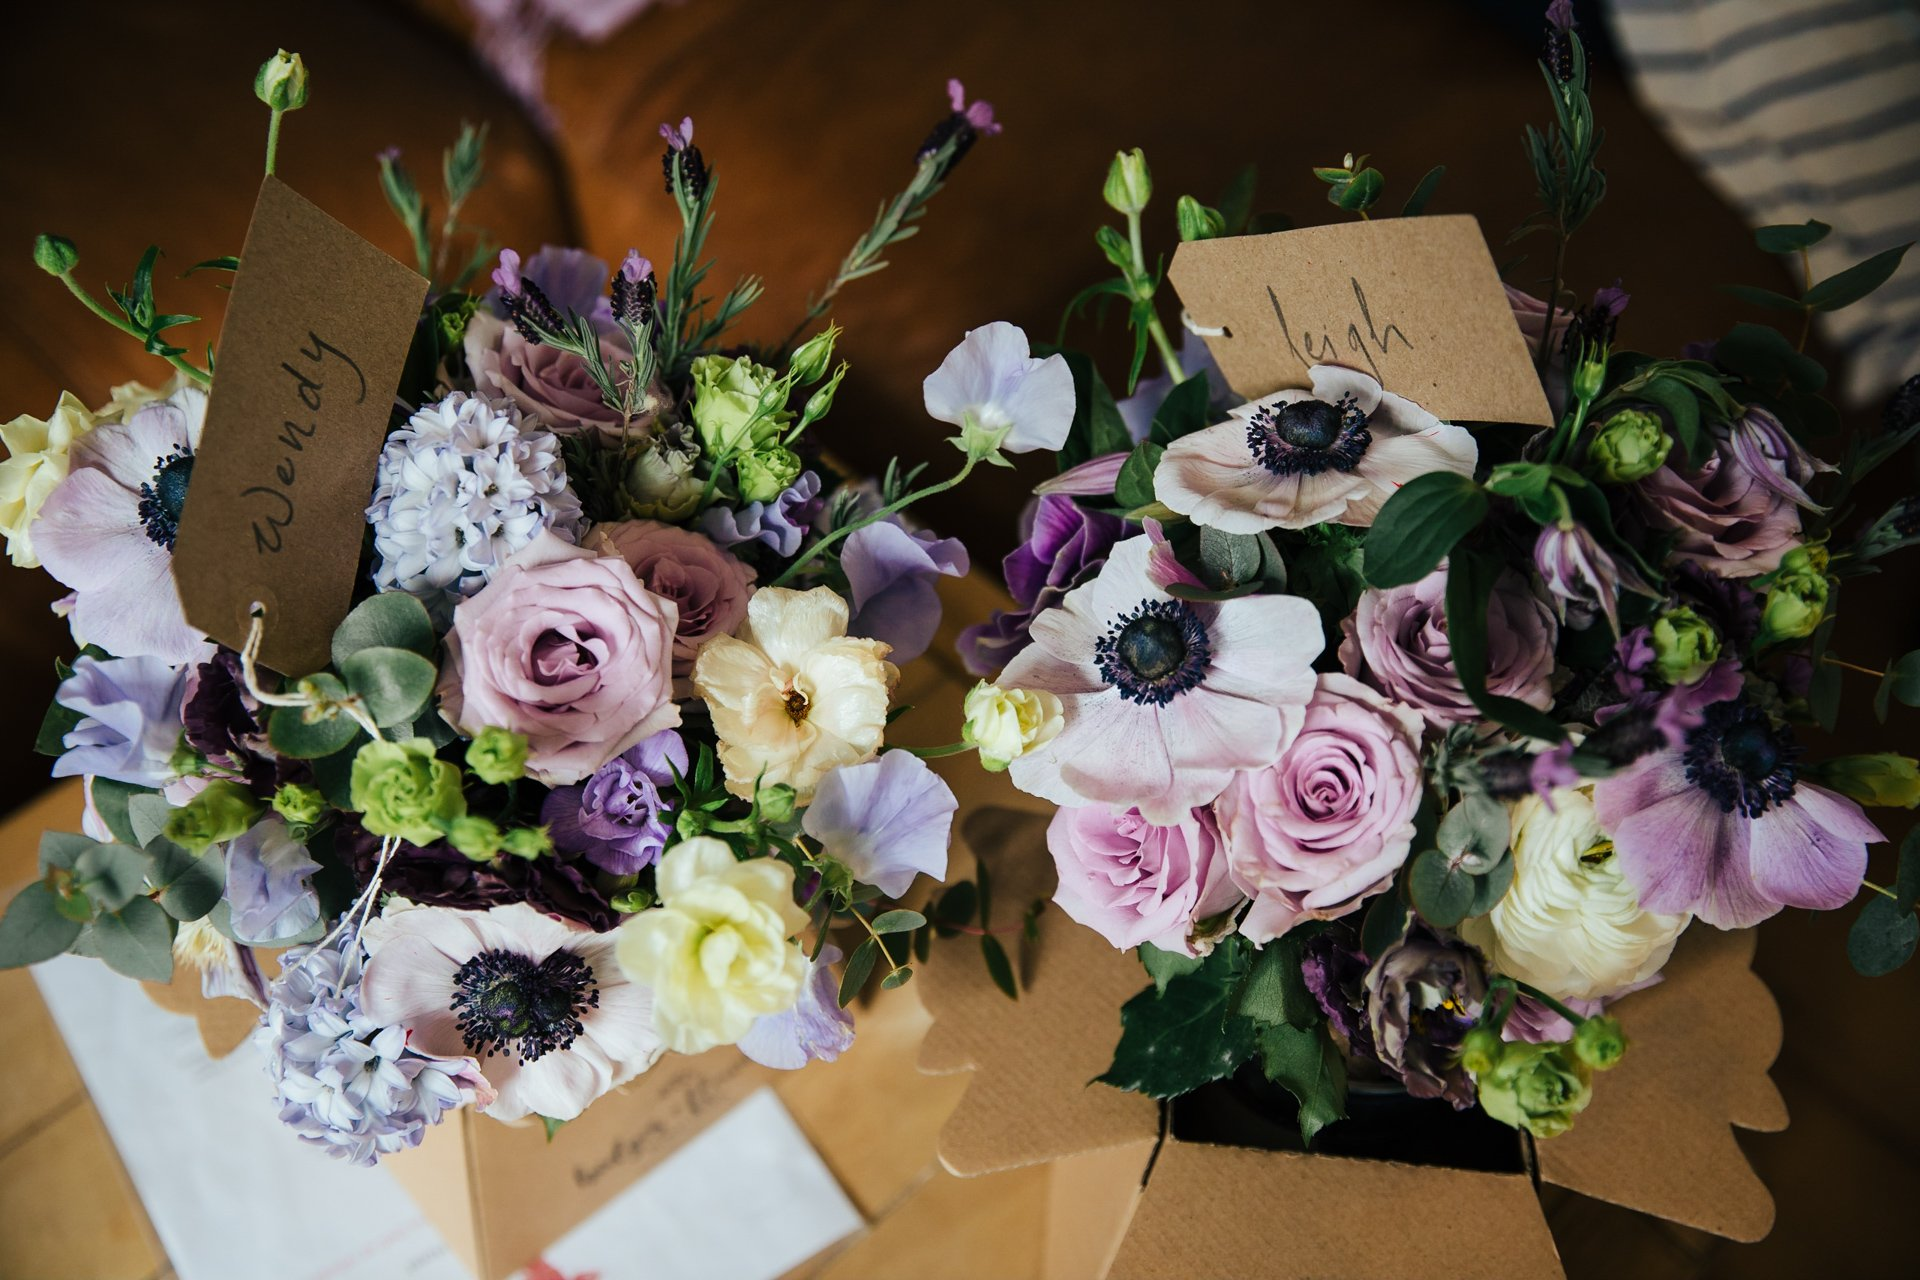 Two gorgeous bridal bouquets with labels for the brides